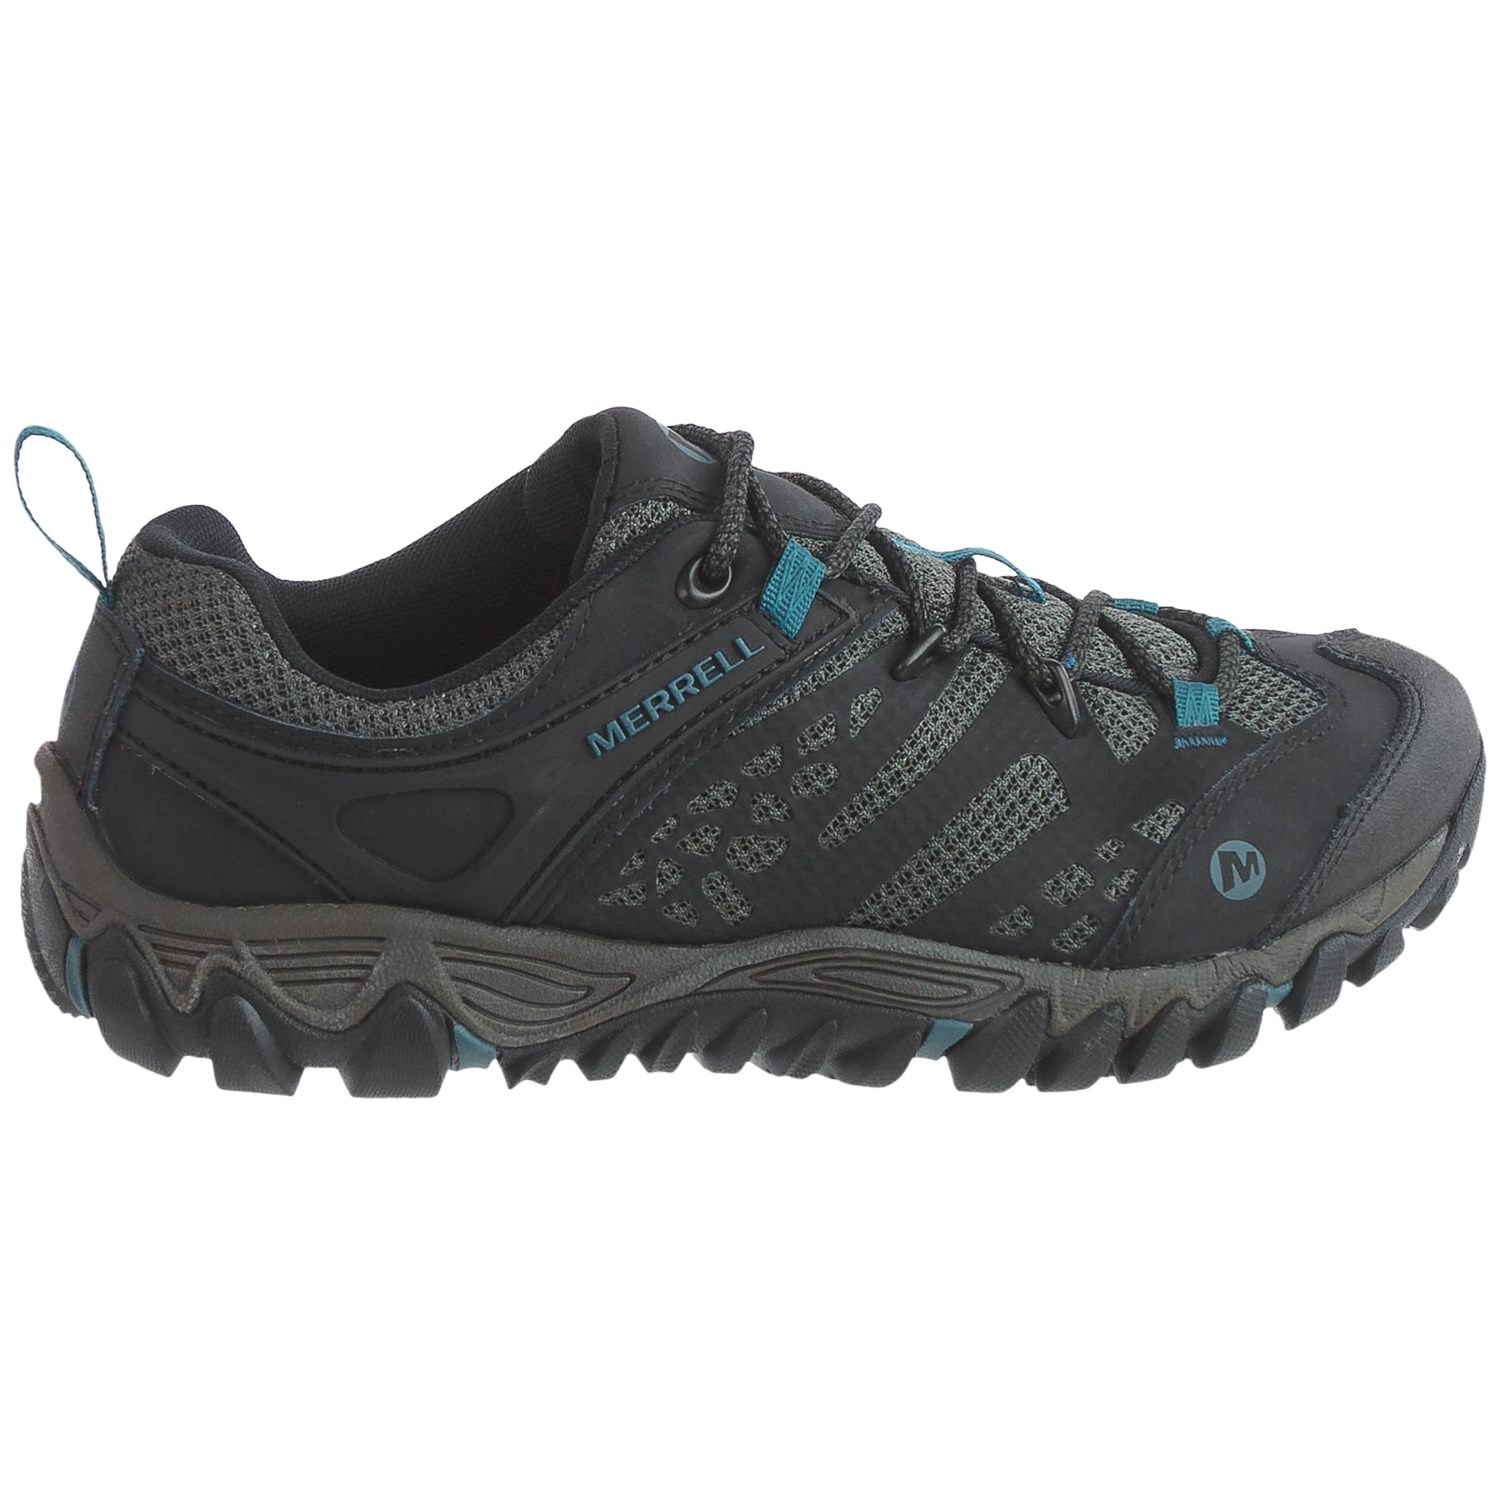 Merrell All Out Blaze Ventilator Hiking Shoes For Women